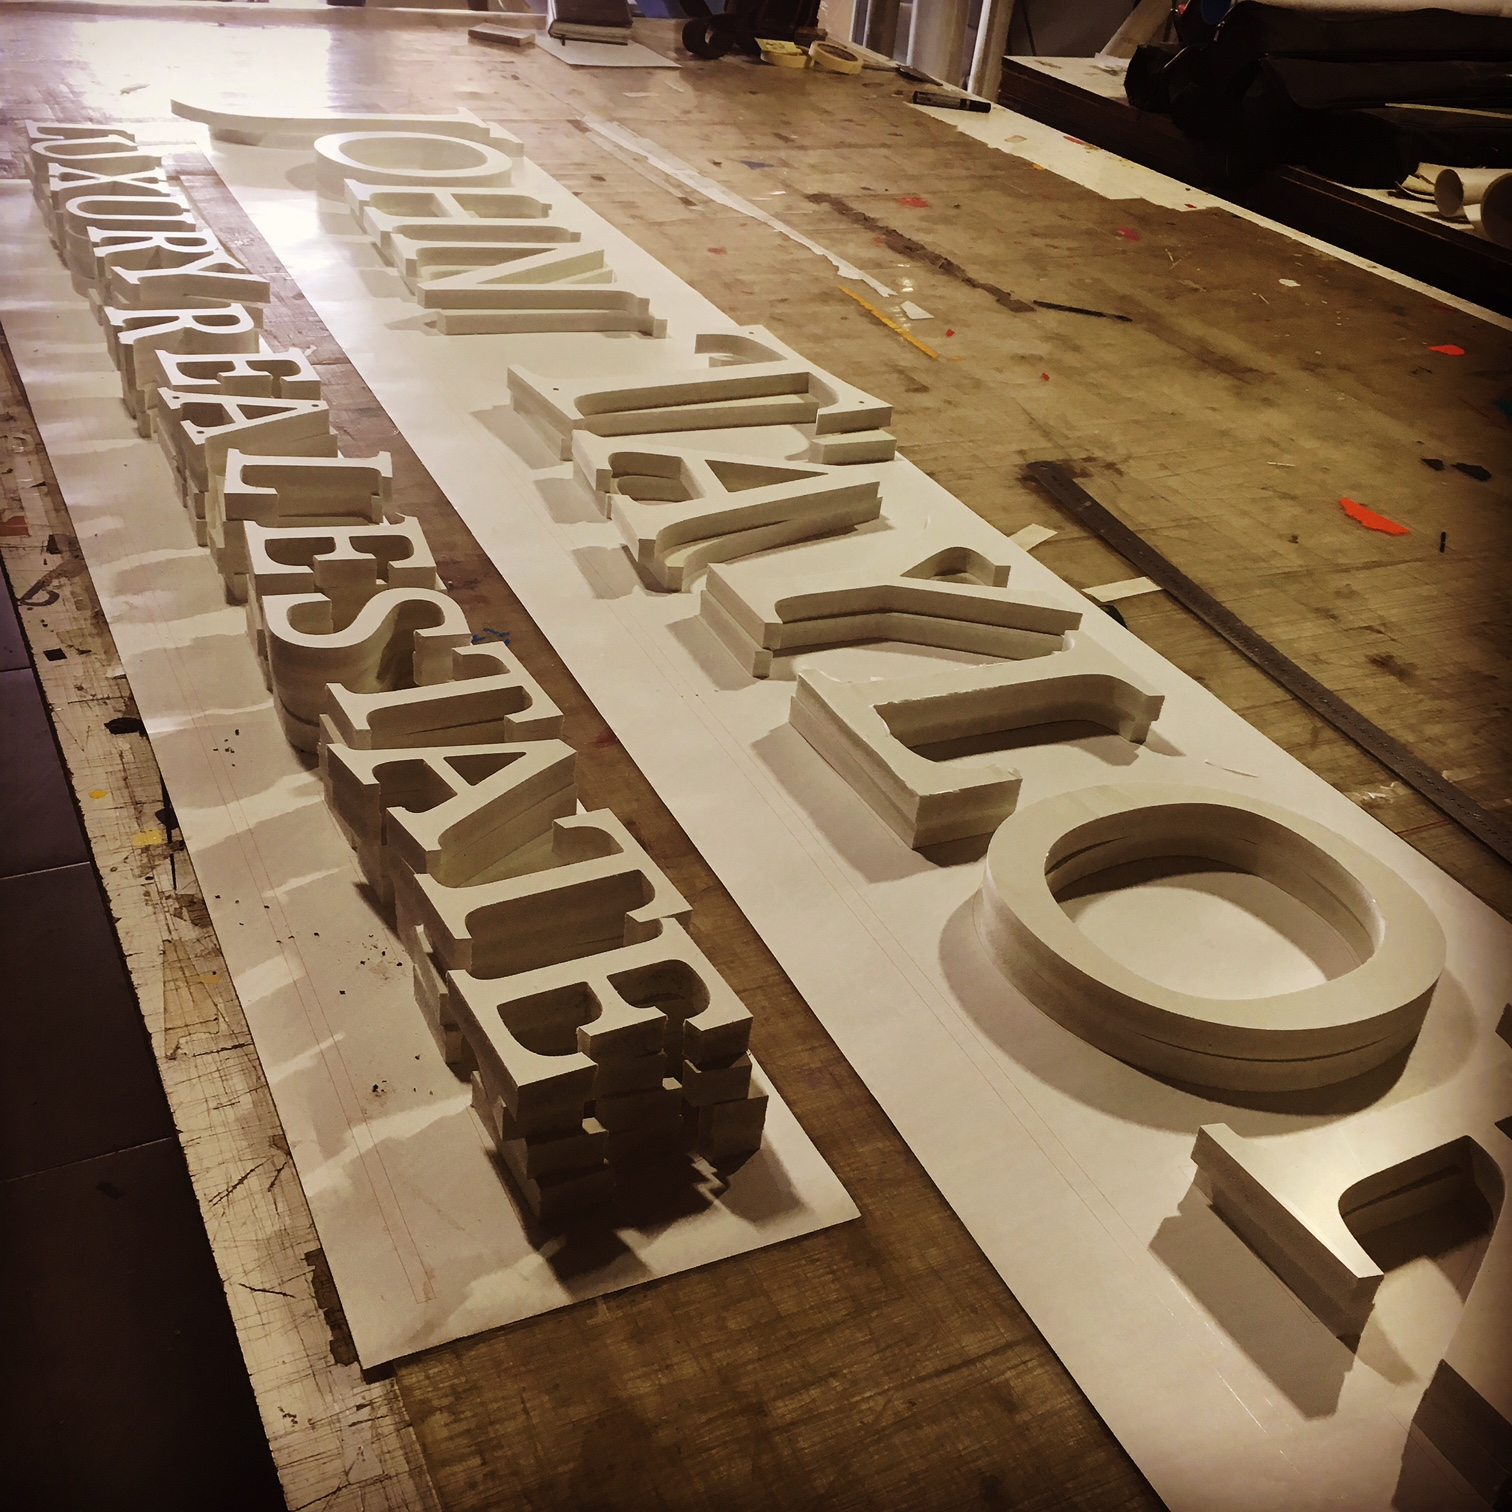 40mm plastic cnc routed lettering